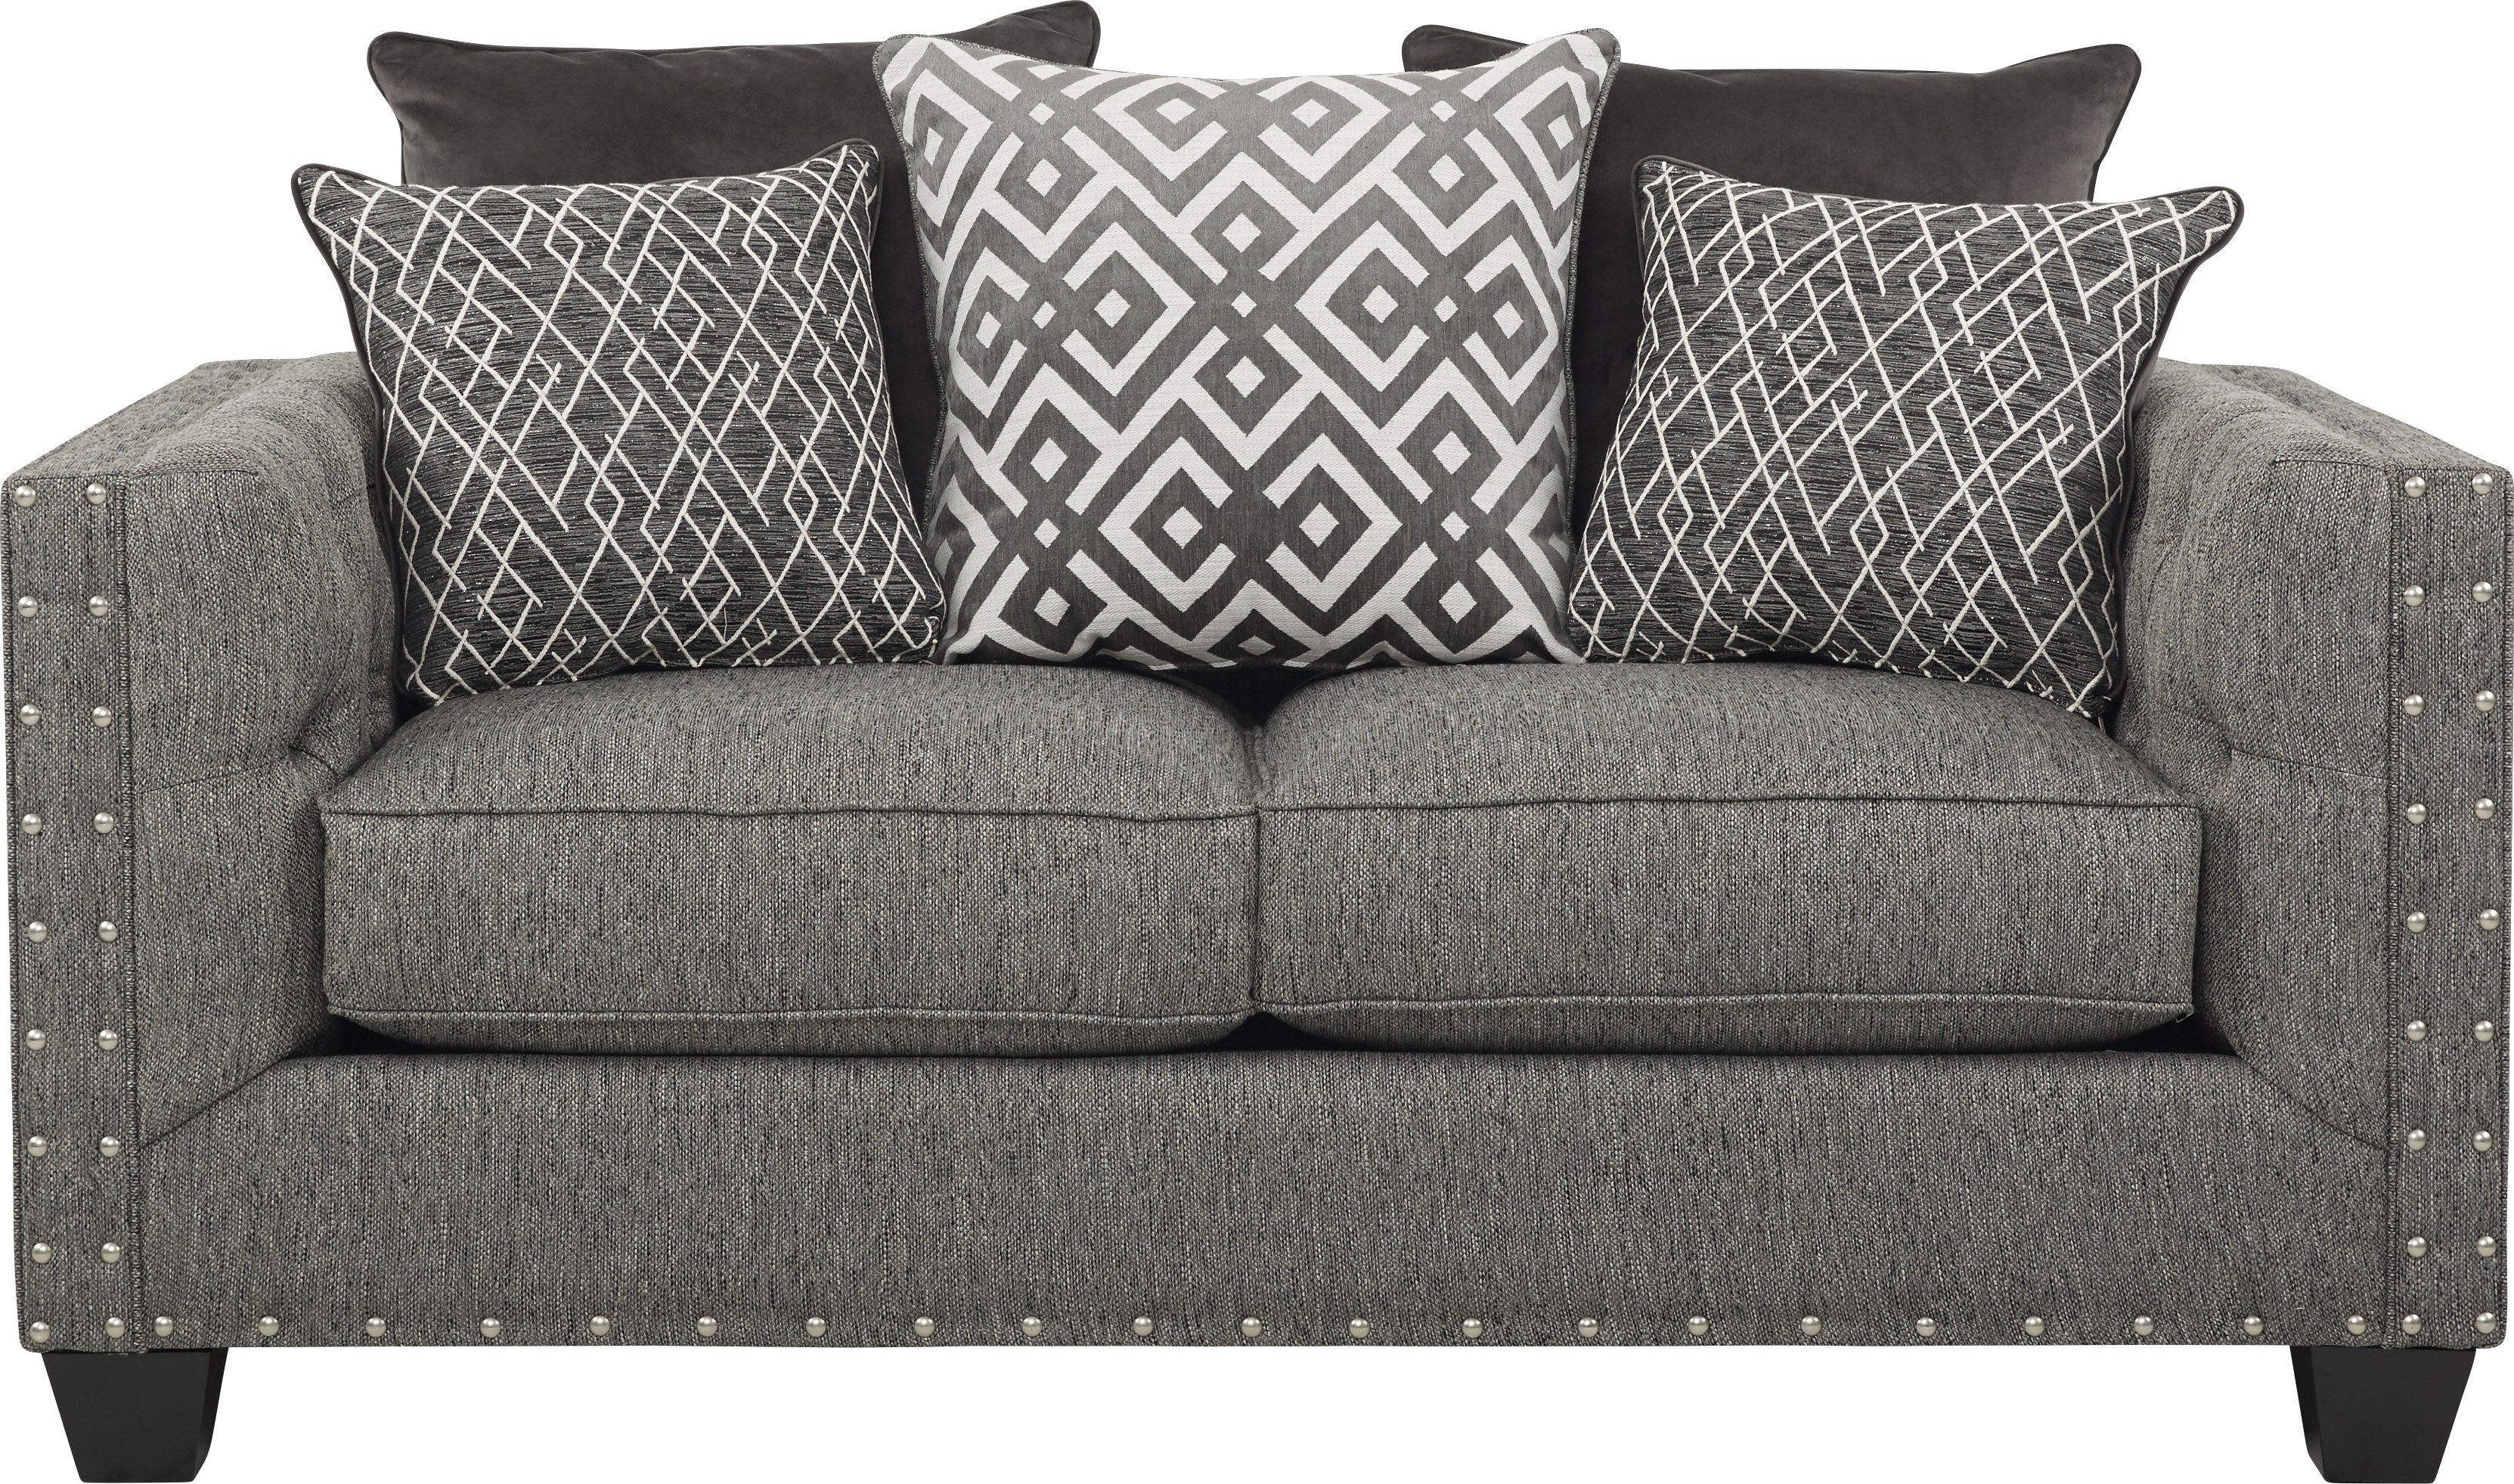 Astonishing Cindy Crawford Home Chelsea Hills Gray Loveseat In 2019 Creativecarmelina Interior Chair Design Creativecarmelinacom